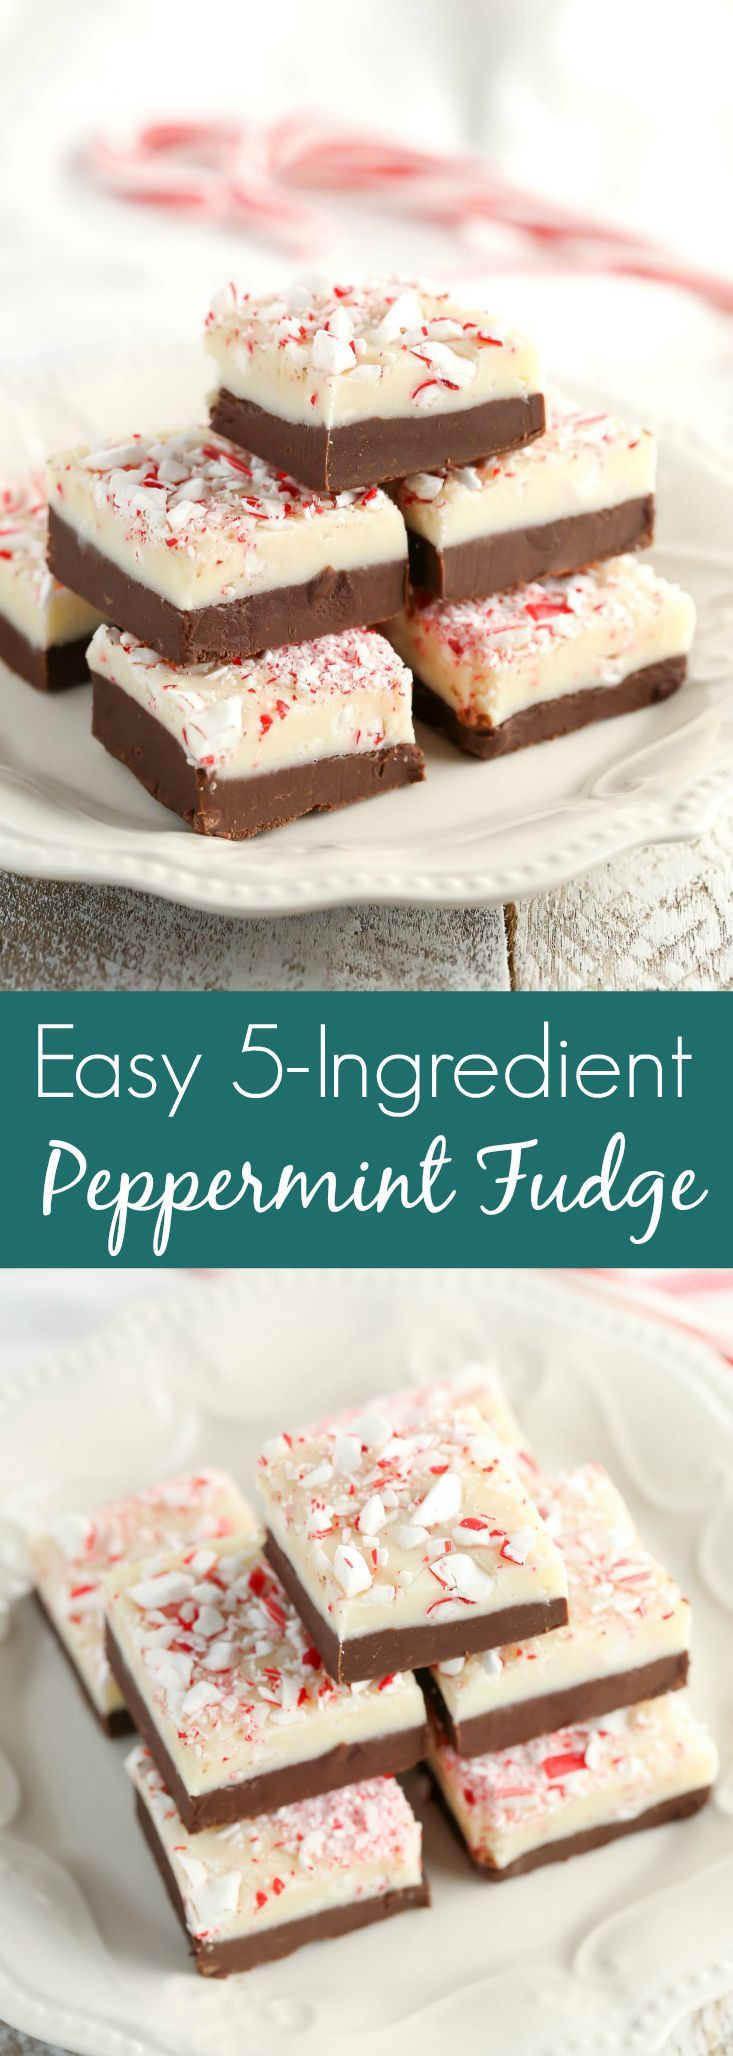 This Easy Peppermint Fudge Features Two Layers Of Decadent And Is Full Flavor The Perfect Treat For Christmas